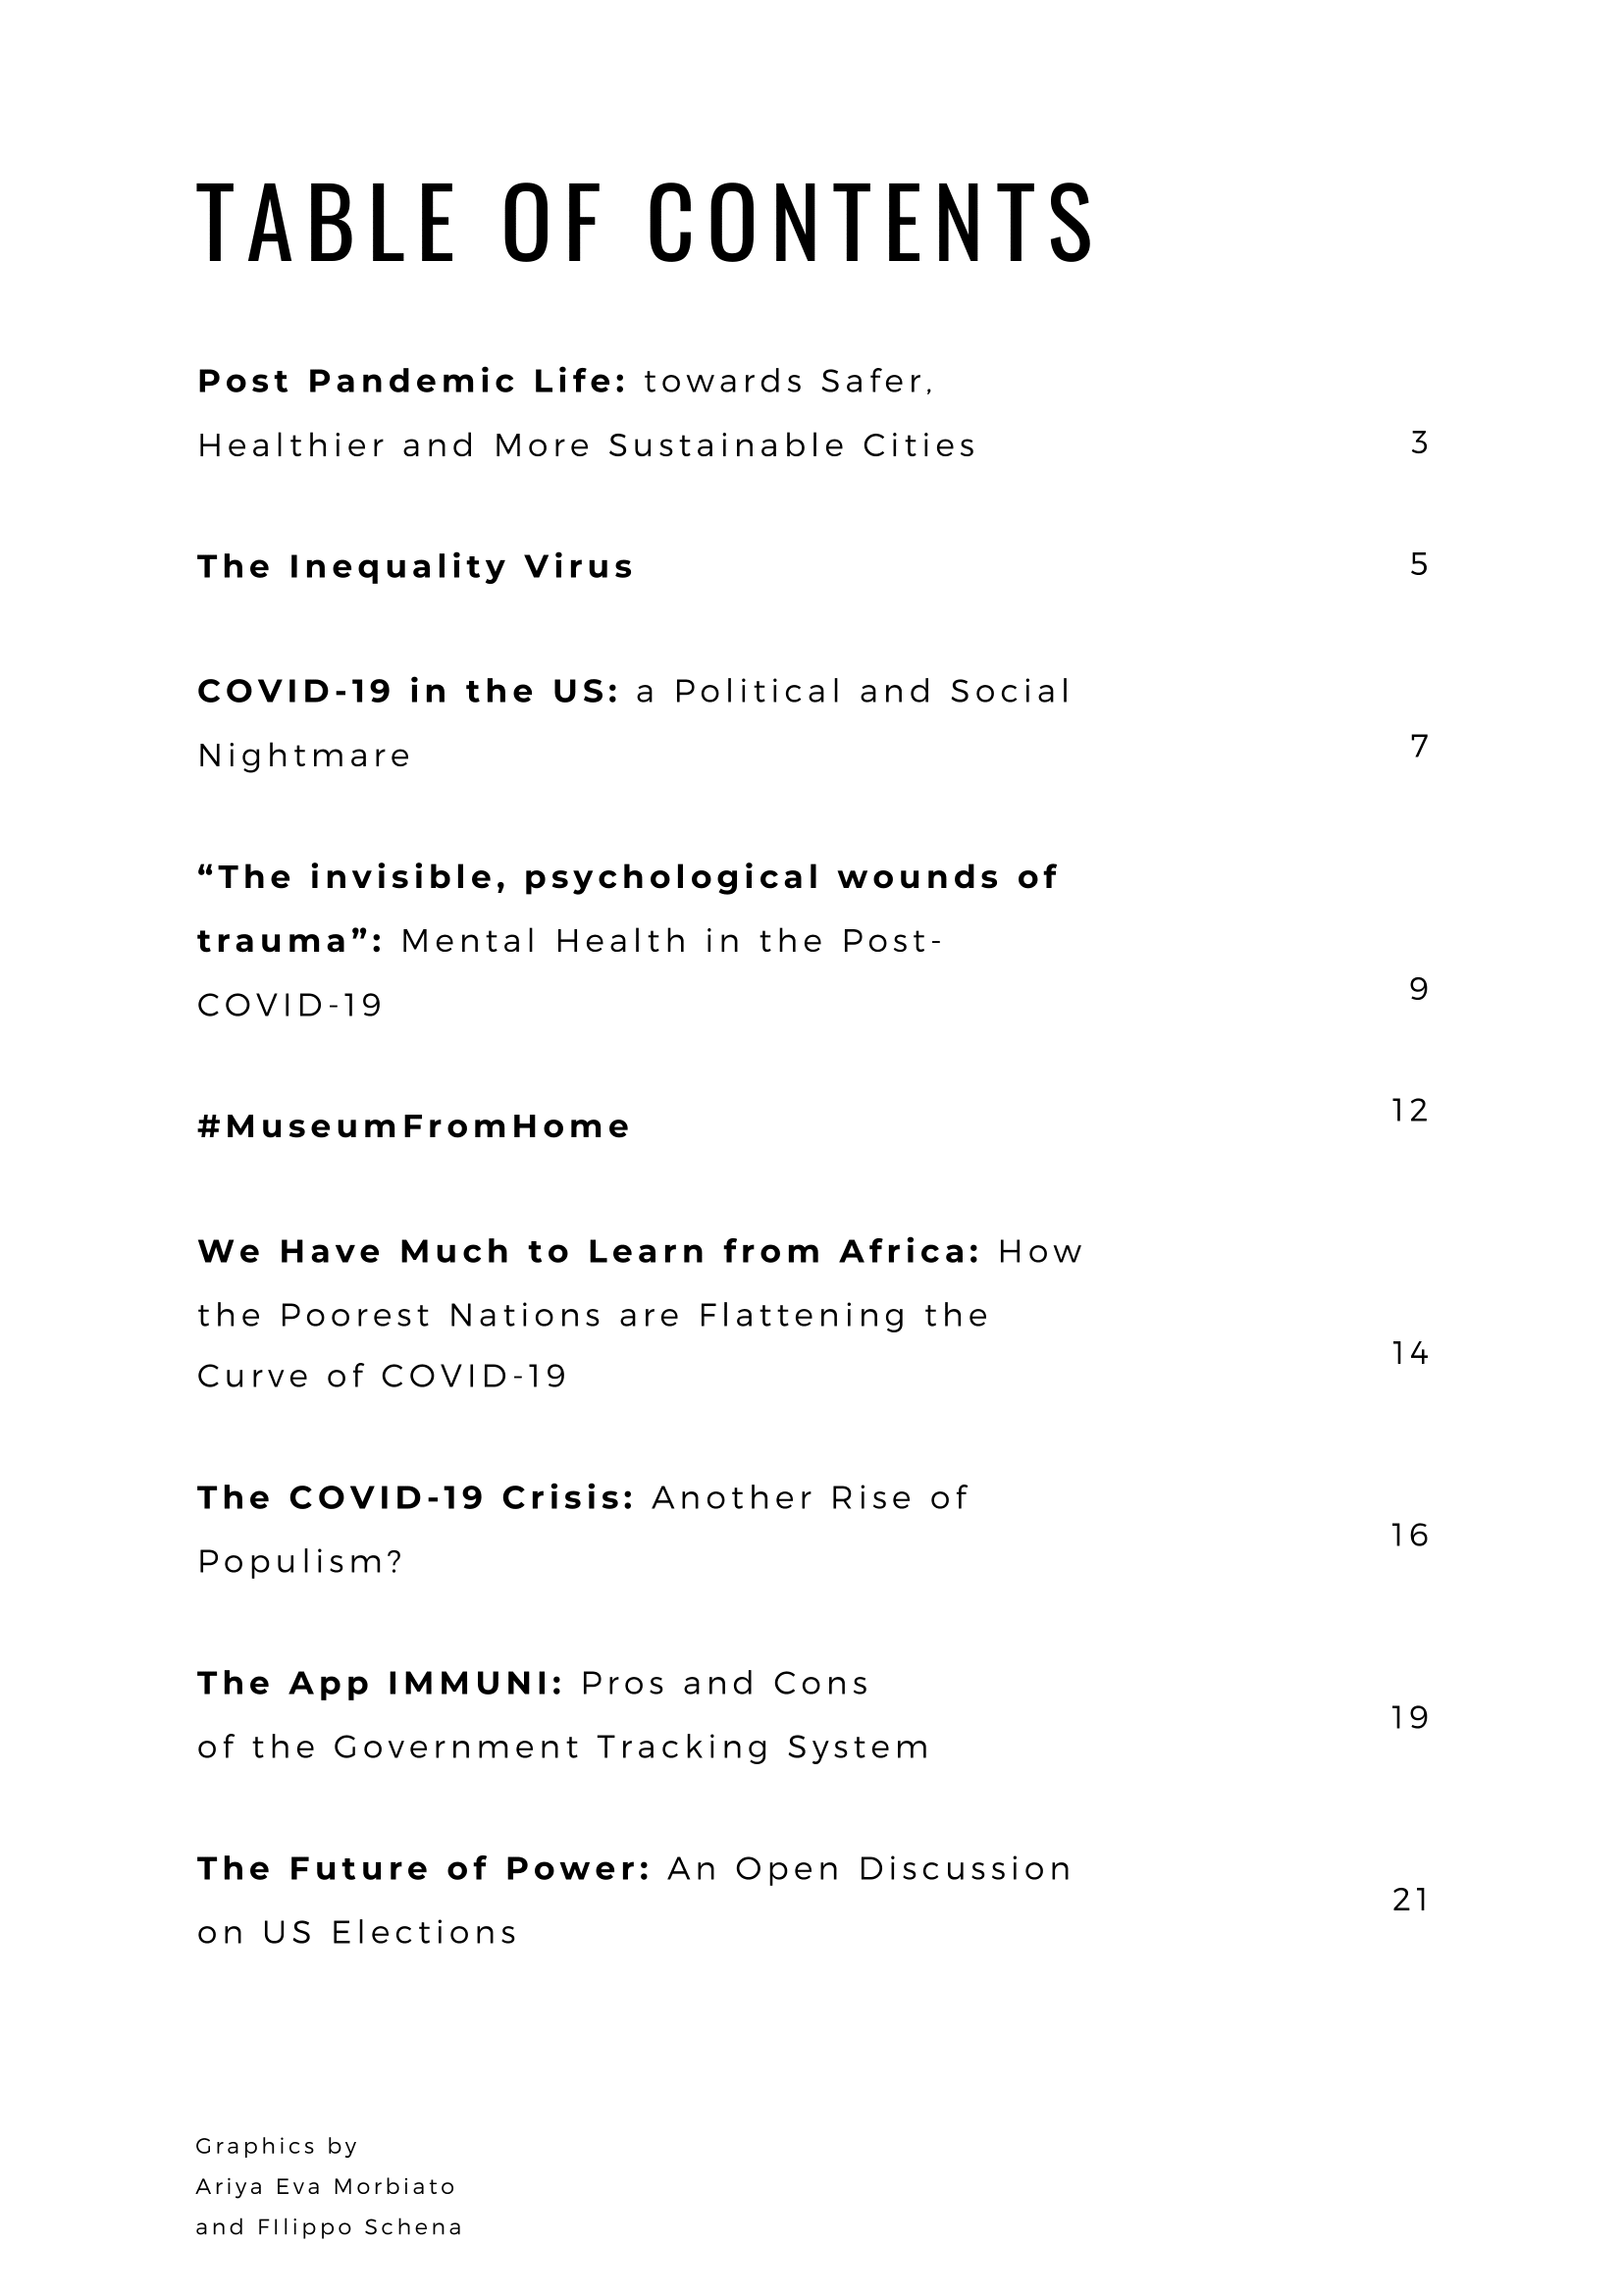 Table of contents-1png